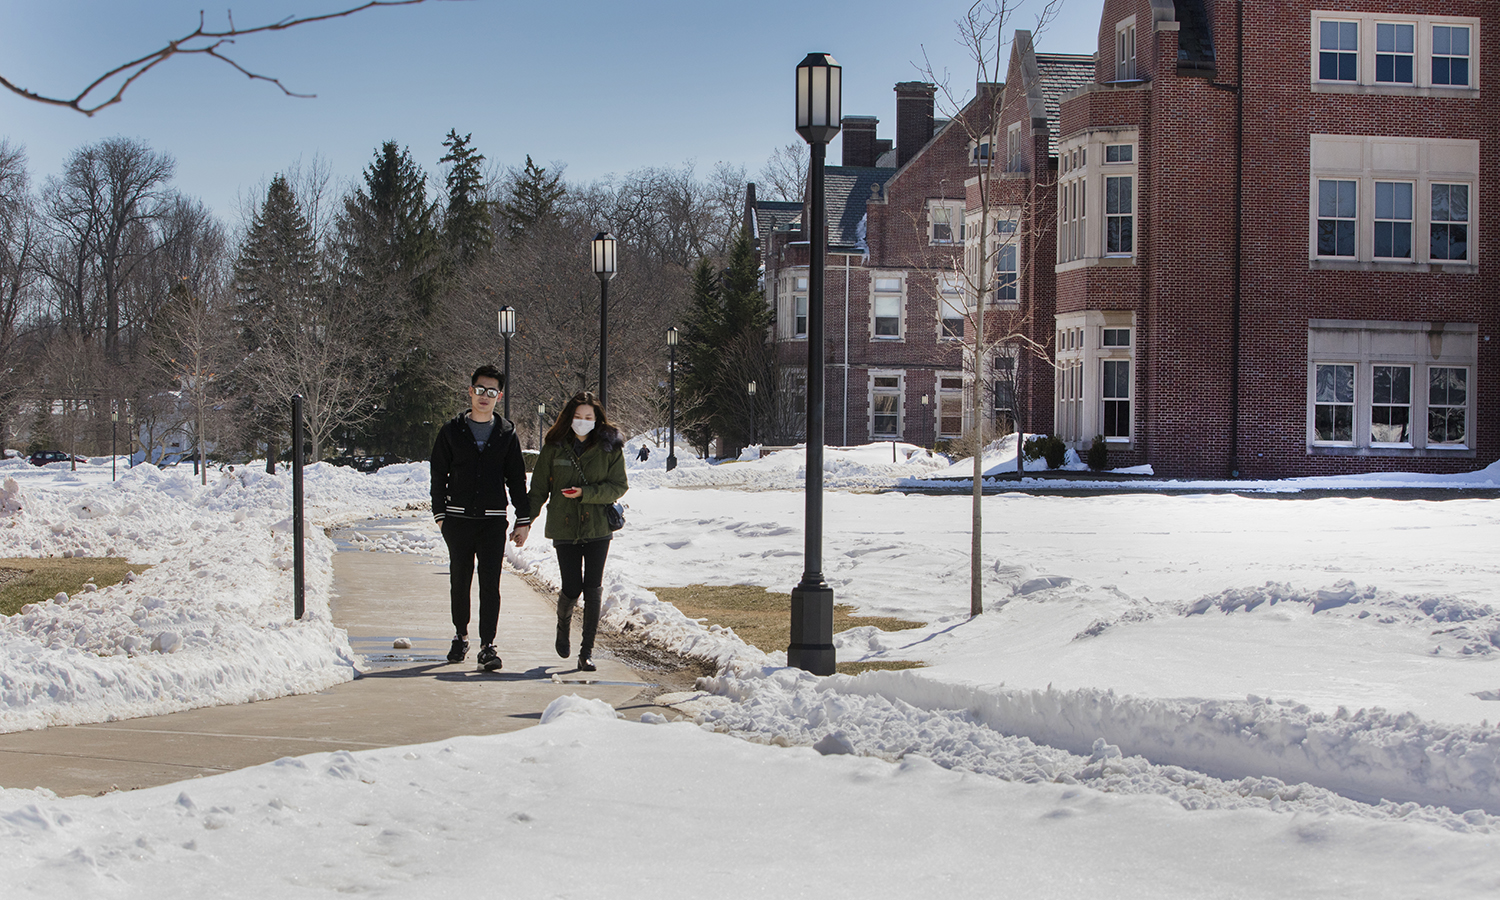 Junwei Cai '19 walks with her friend Yiming Yu on the way to scandling Friday.